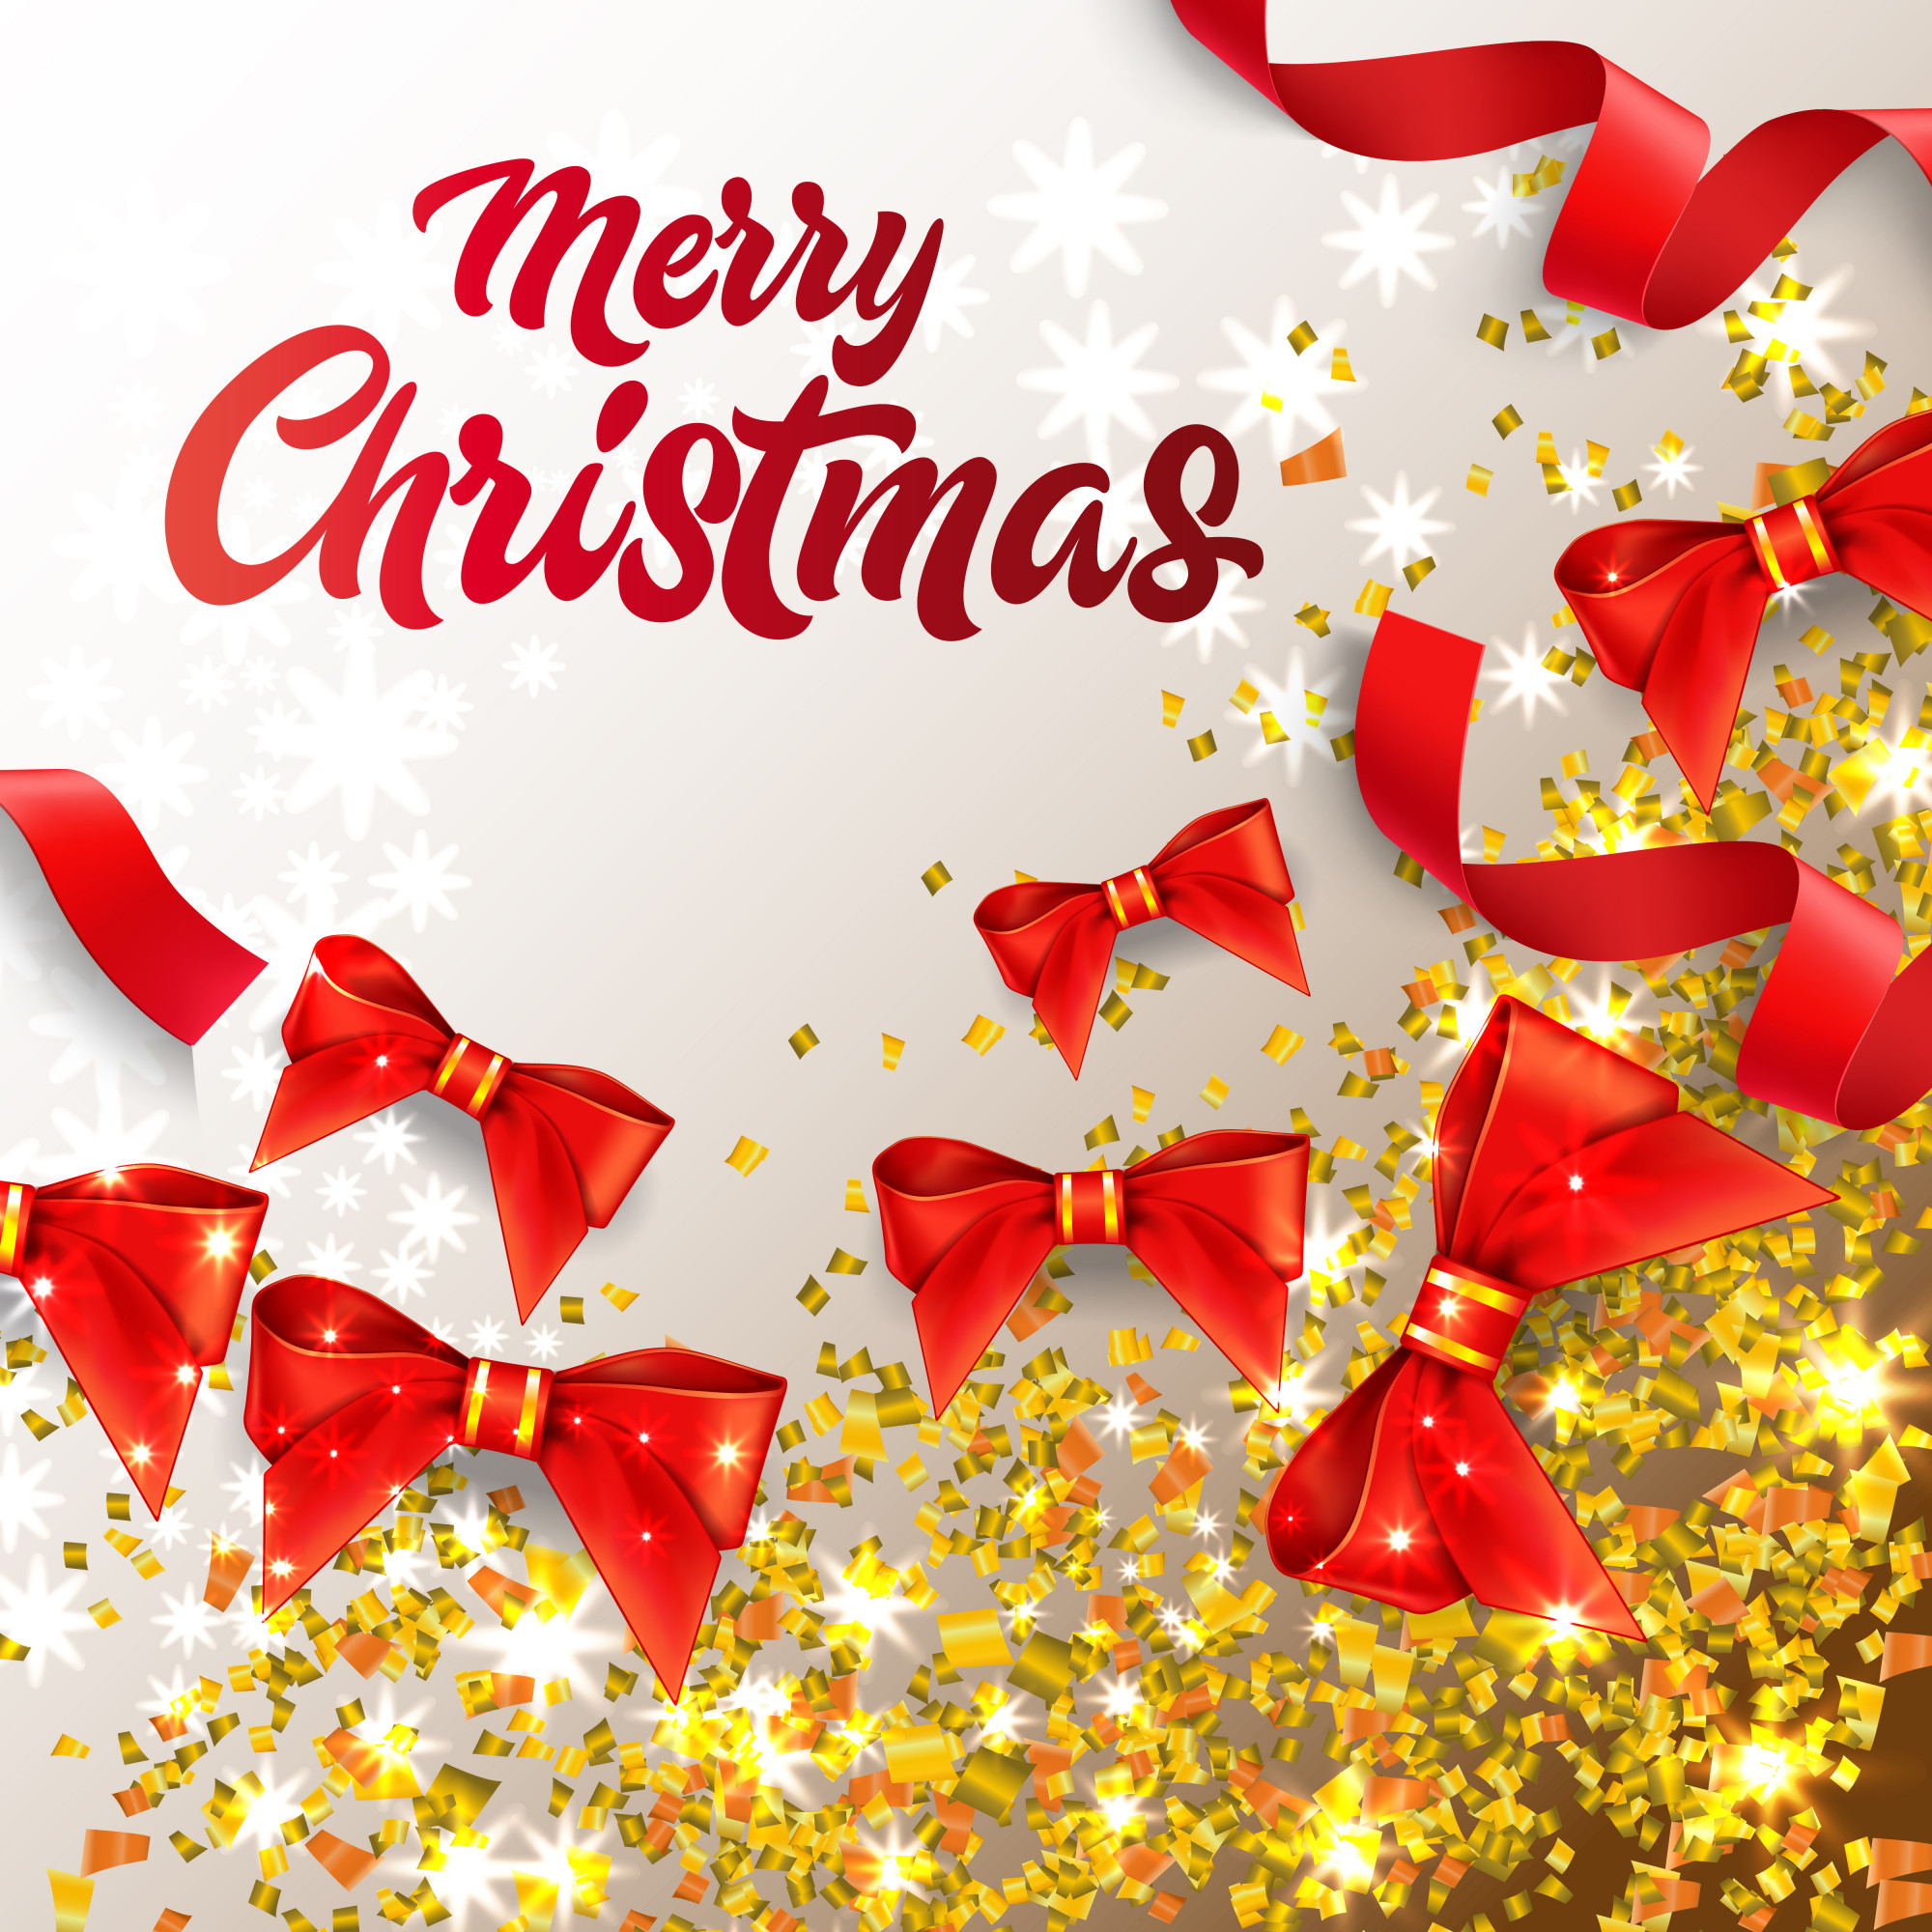 Merry Christmas lettering with shining confetti and red bows